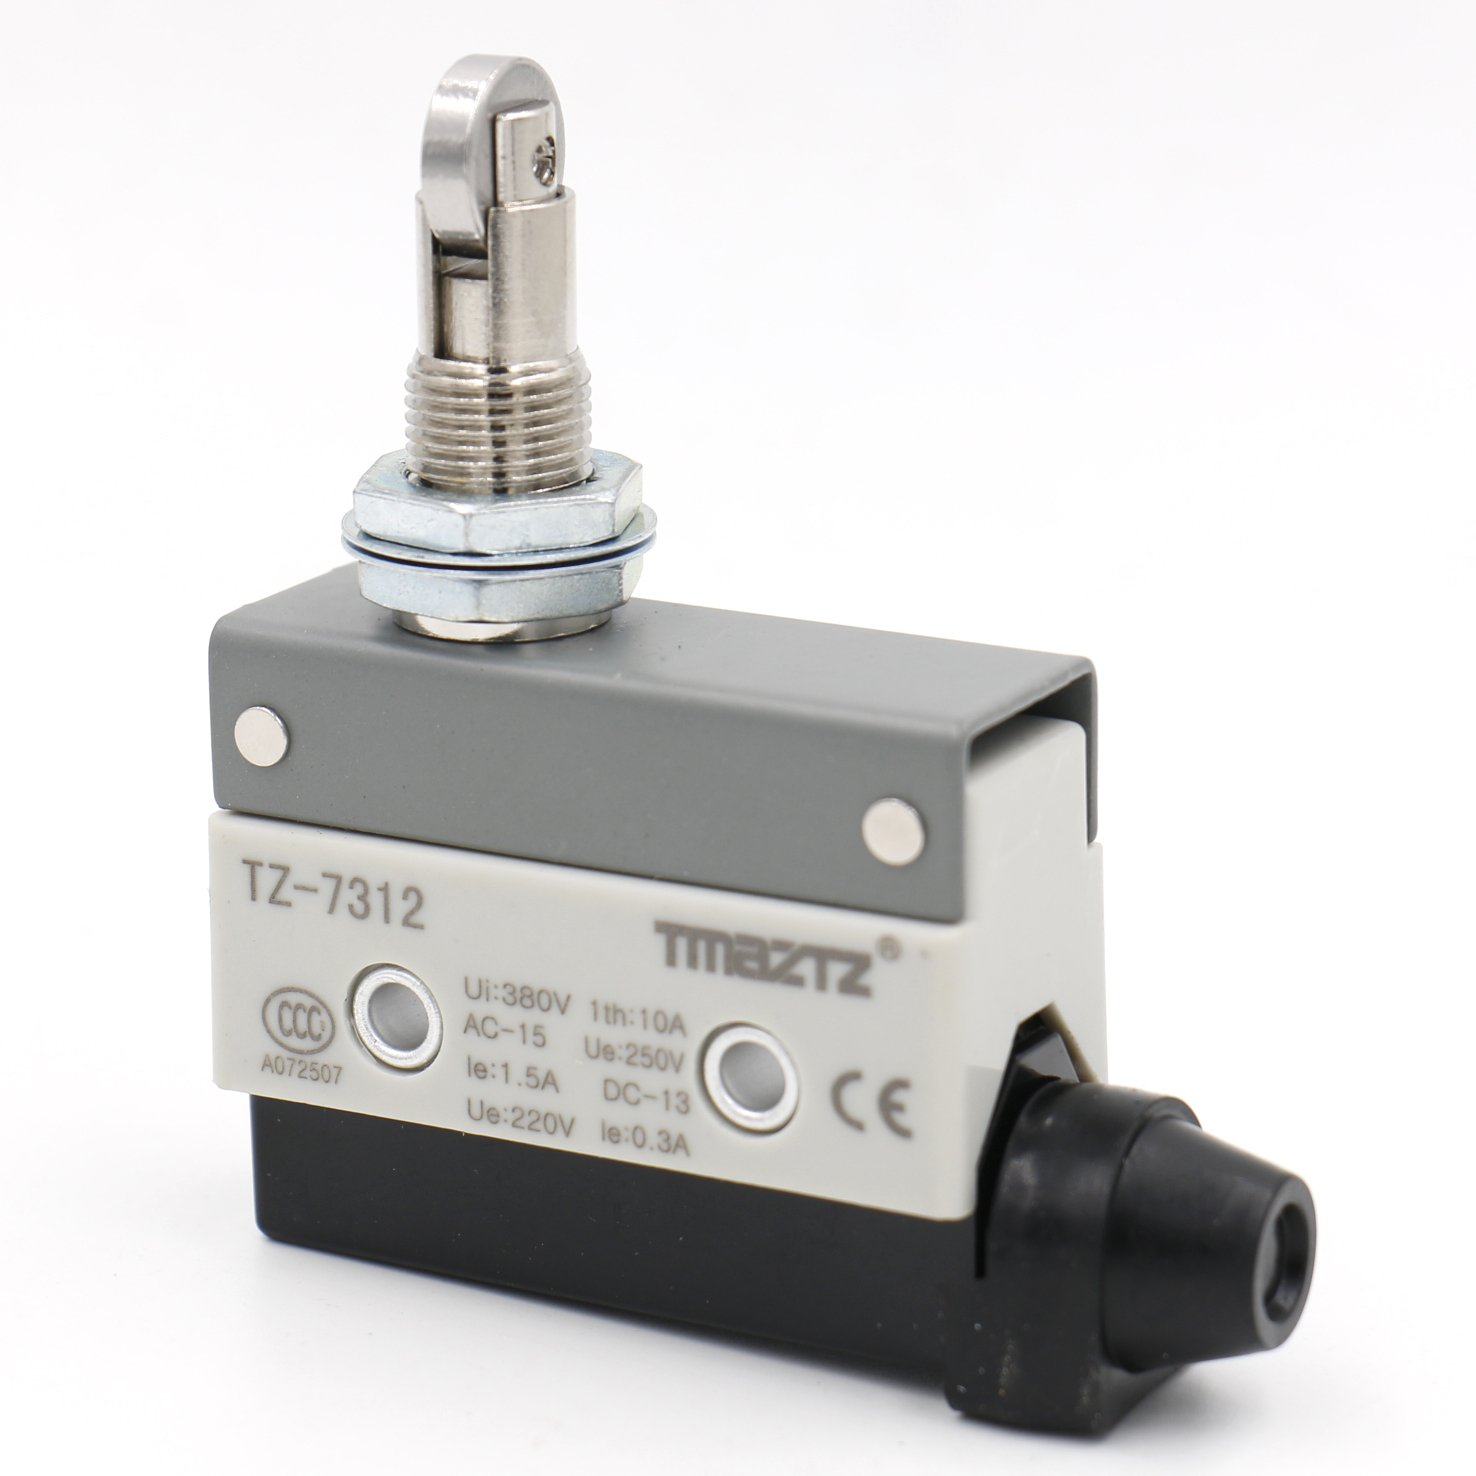 Heschen horizontal Limit Switch Tz-7312  Momentray Cross Rouleau Piston actionneur AC 380  V 10  A unipolaire Yongde Industrial switch